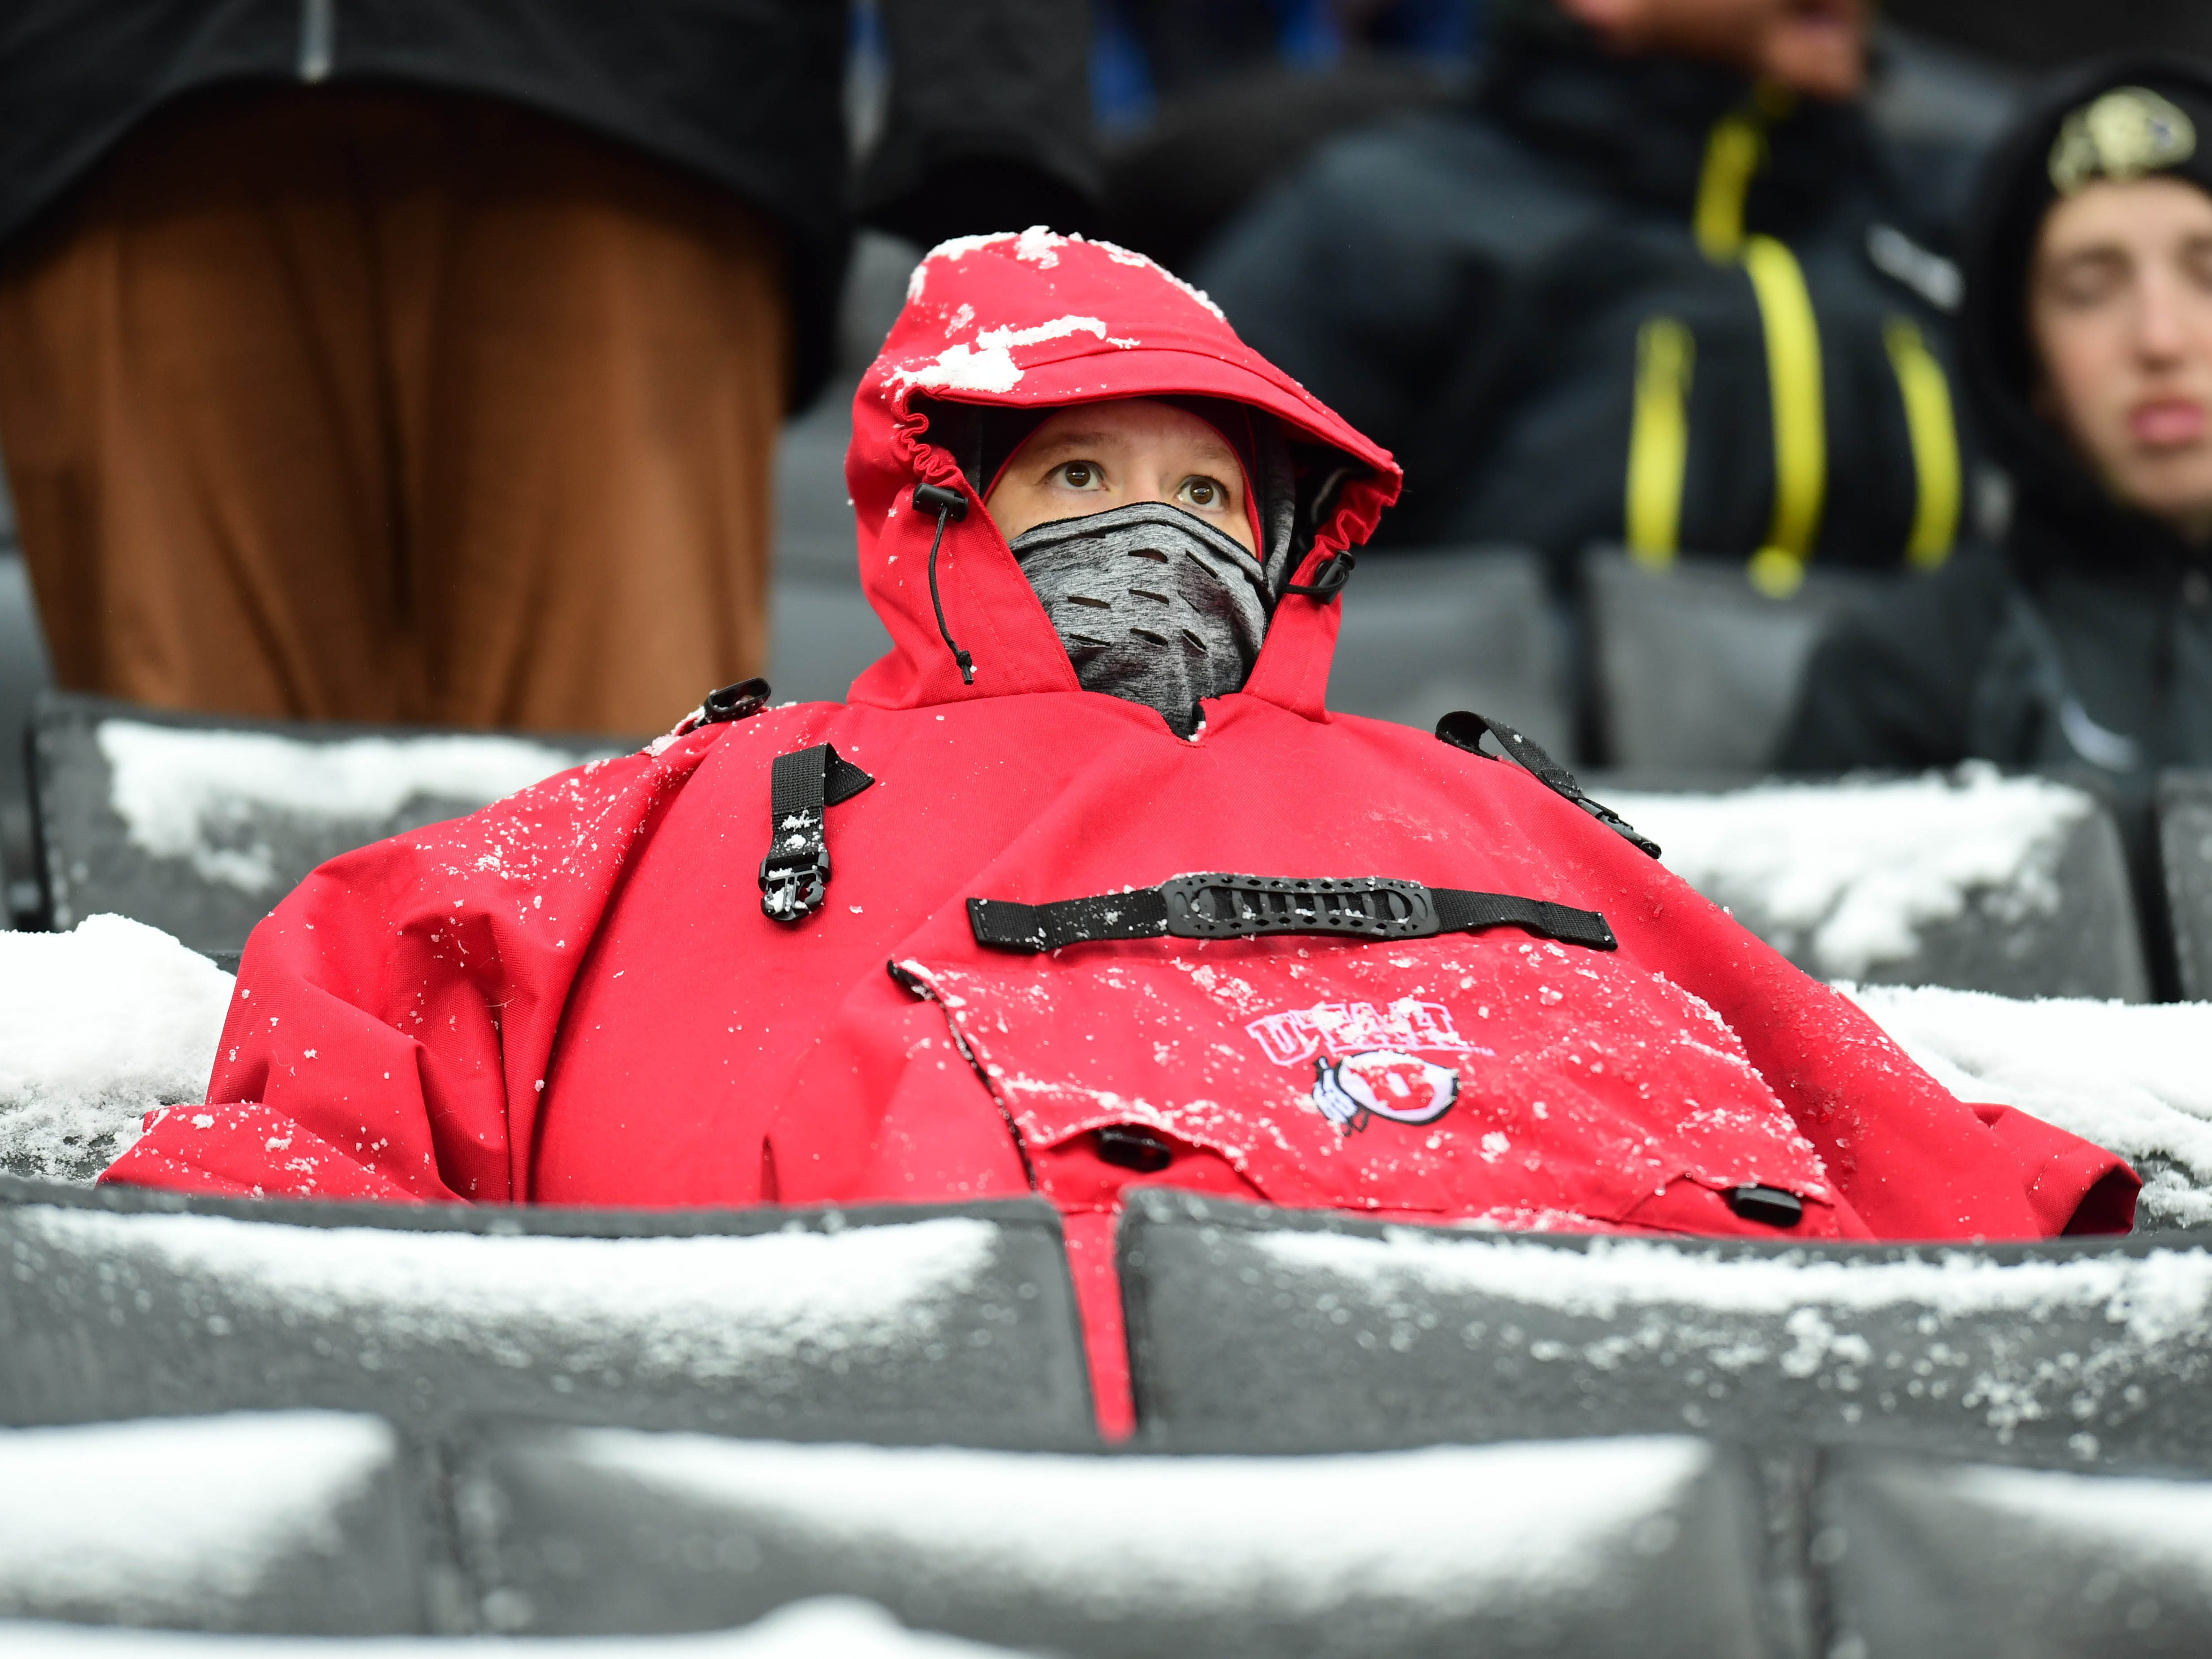 Week 12: A Utah Utes fan bundles up during the game against the Colorado Buffaloes.